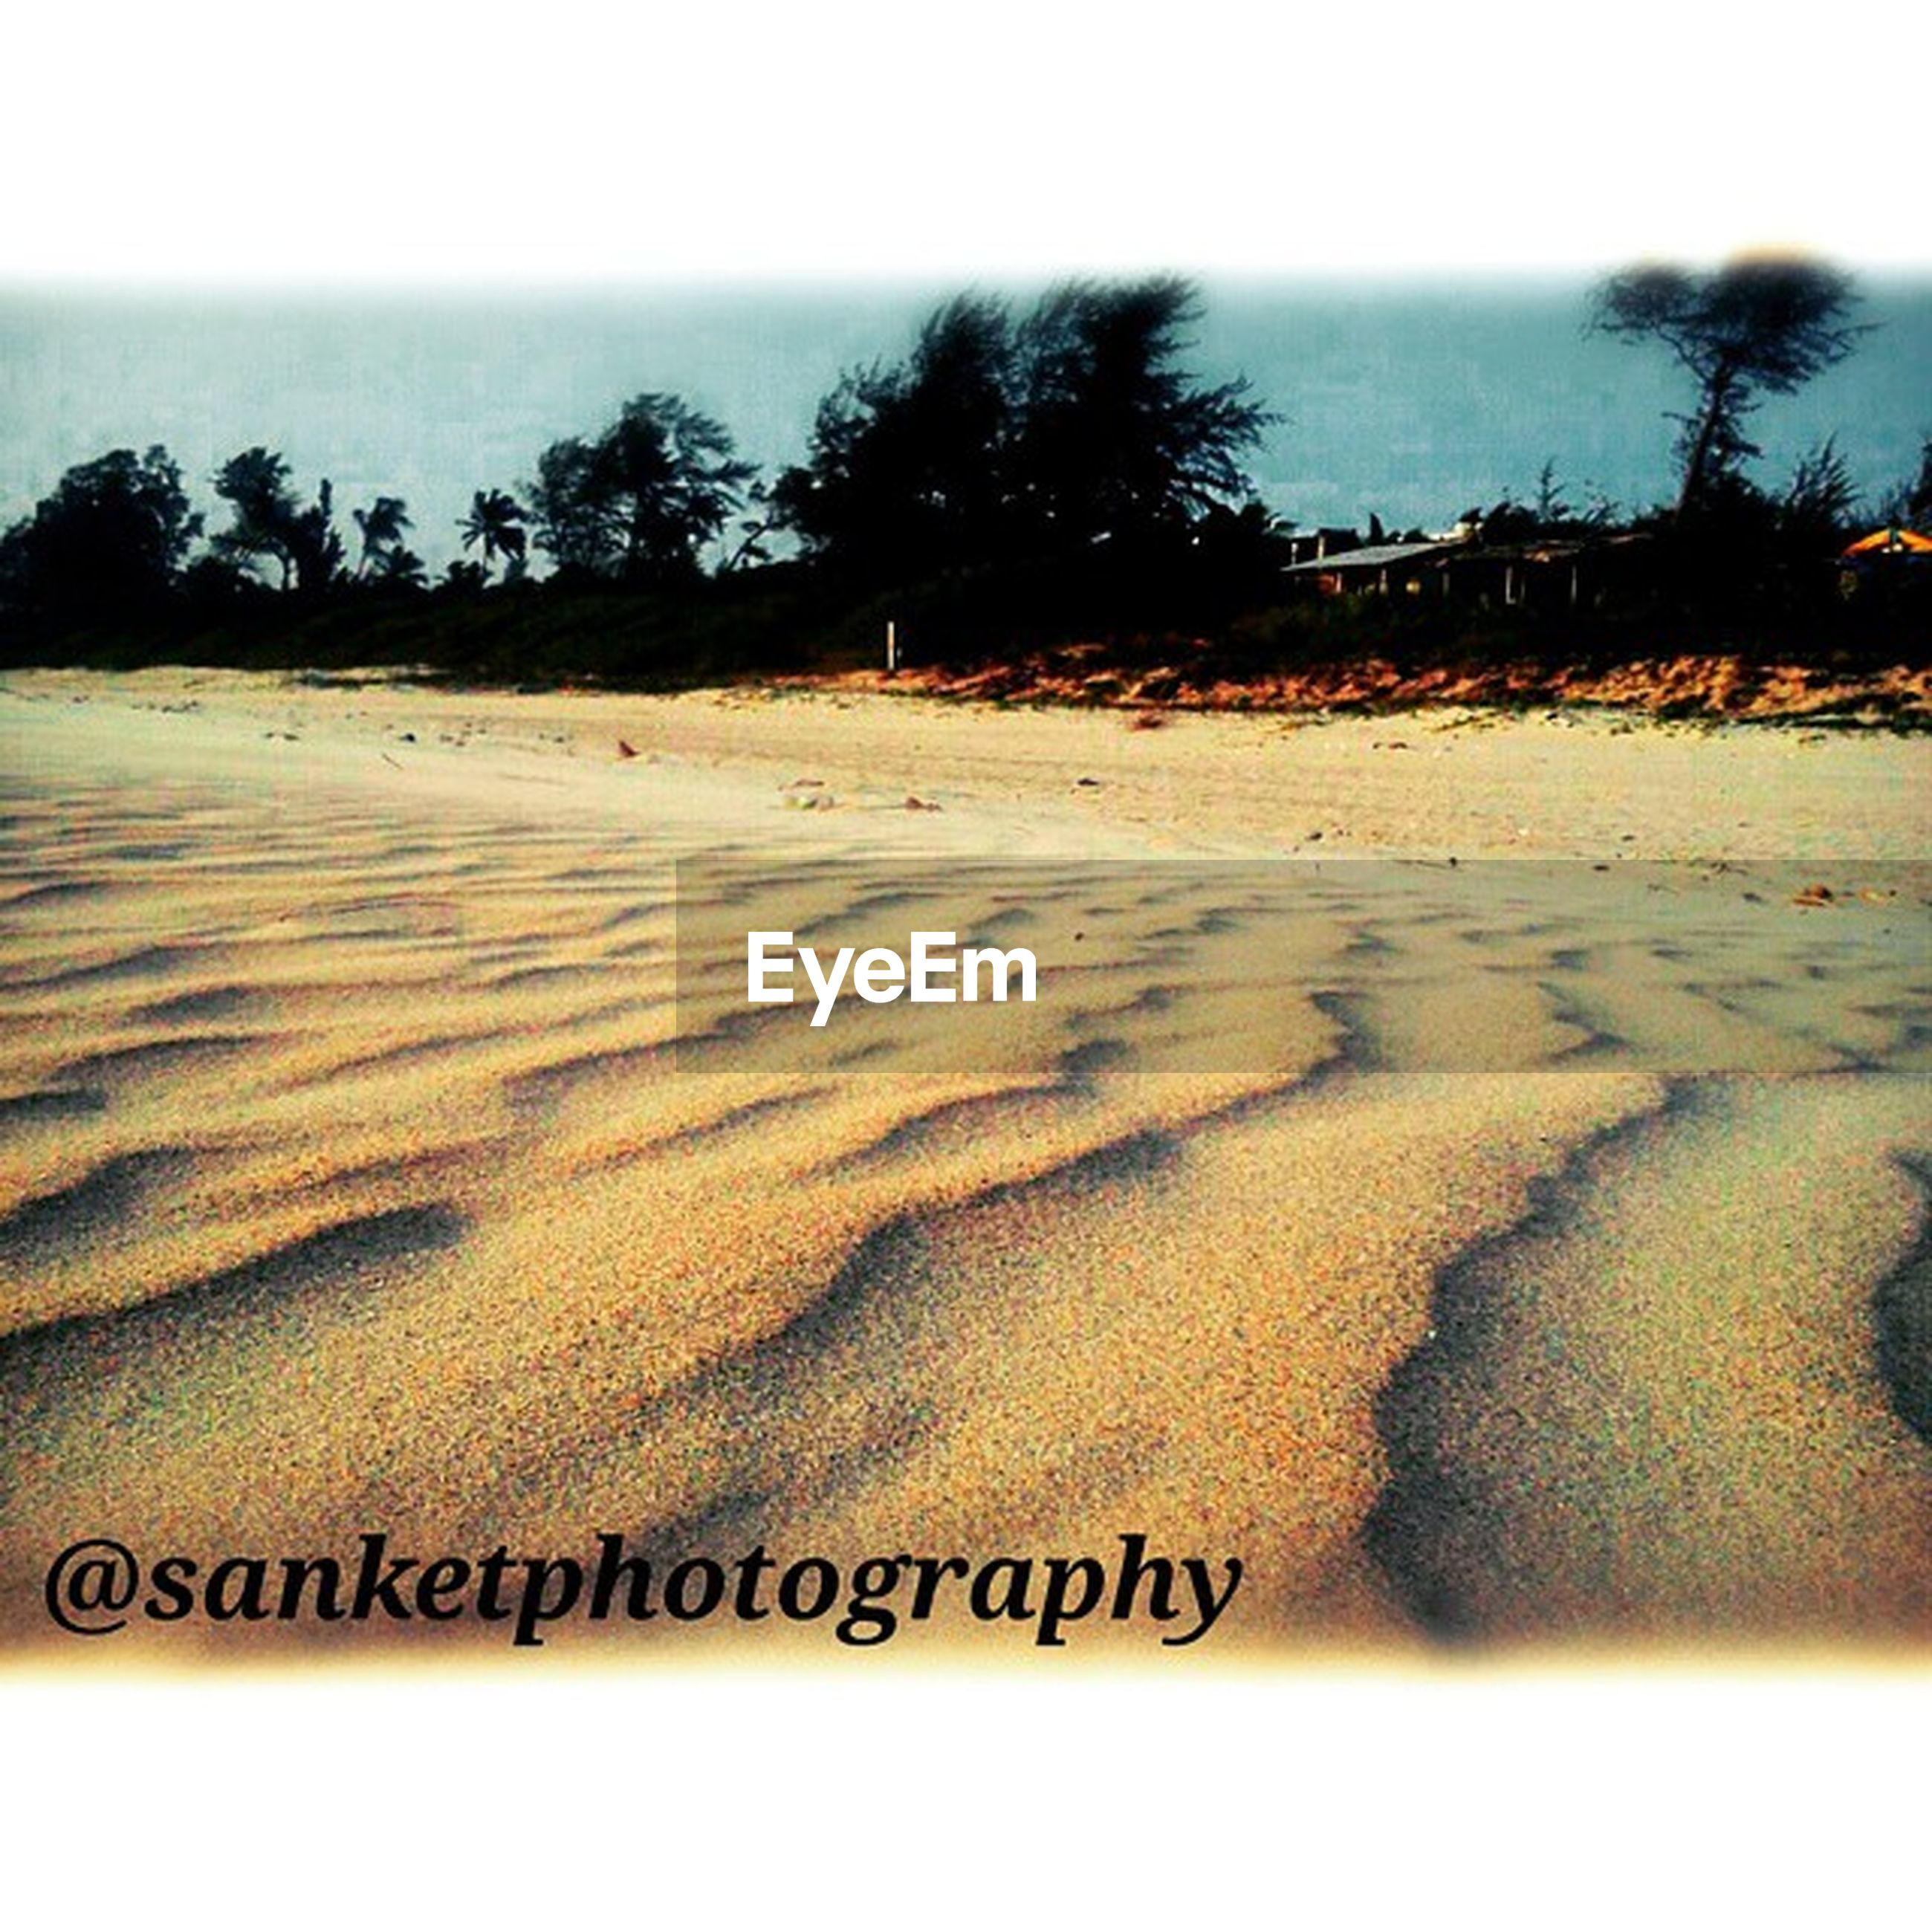 beach, sea, sand, shore, water, horizon over water, tranquility, wave, tranquil scene, scenics, transfer print, nature, beauty in nature, auto post production filter, sky, surf, text, coastline, western script, idyllic